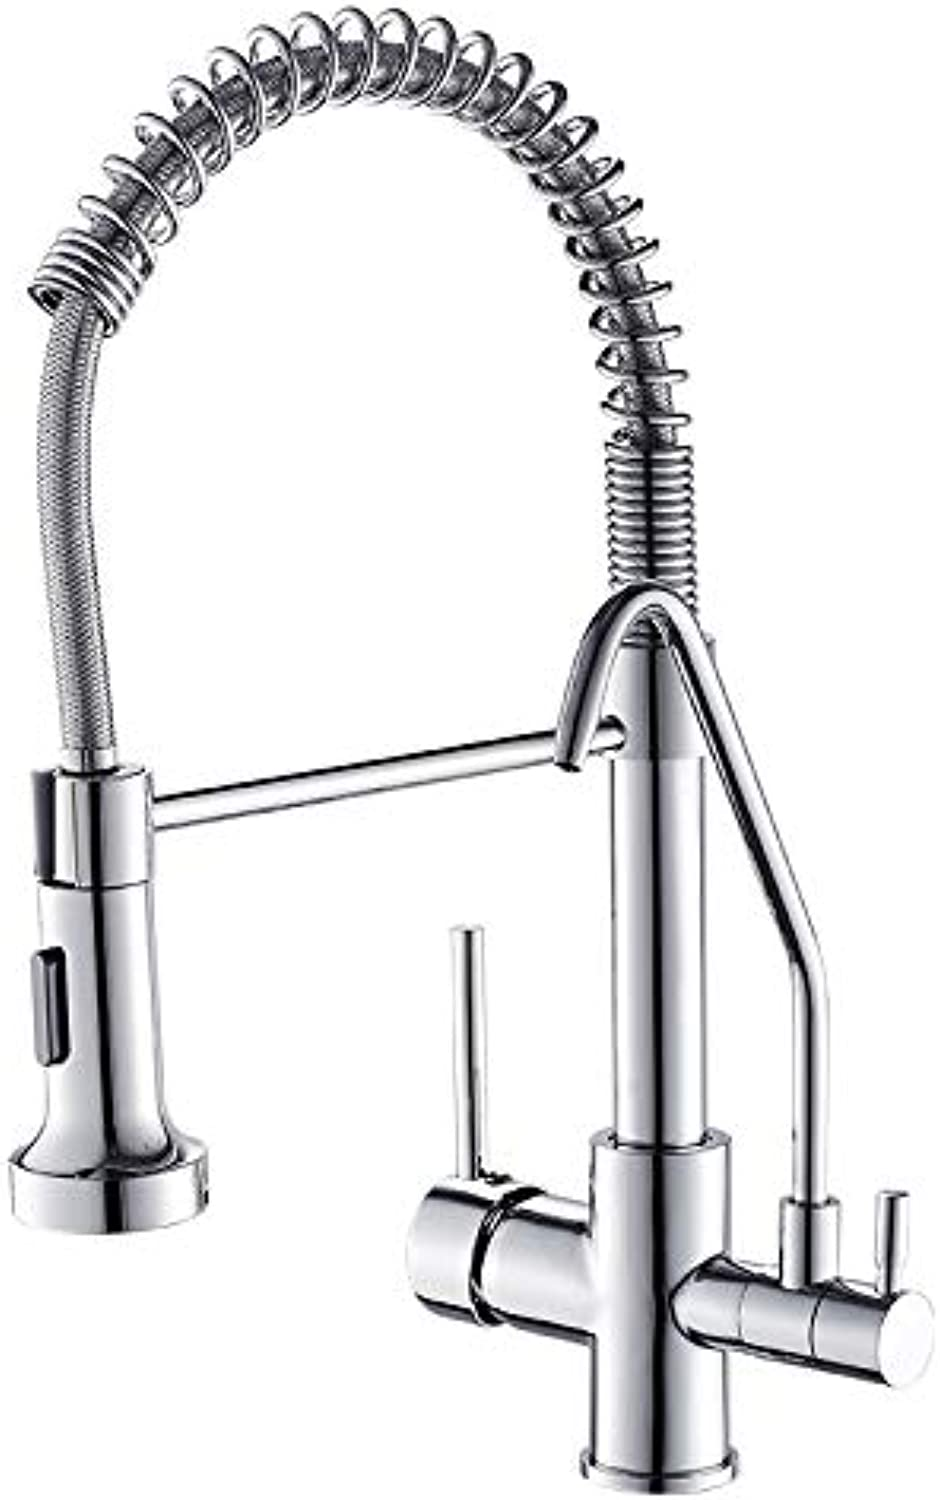 CZOOR Spring Style Kitchen Faucet Filter Water Faucet Pull Down redate Taps Swivel Multifunction Water Outlet Mixer Tap